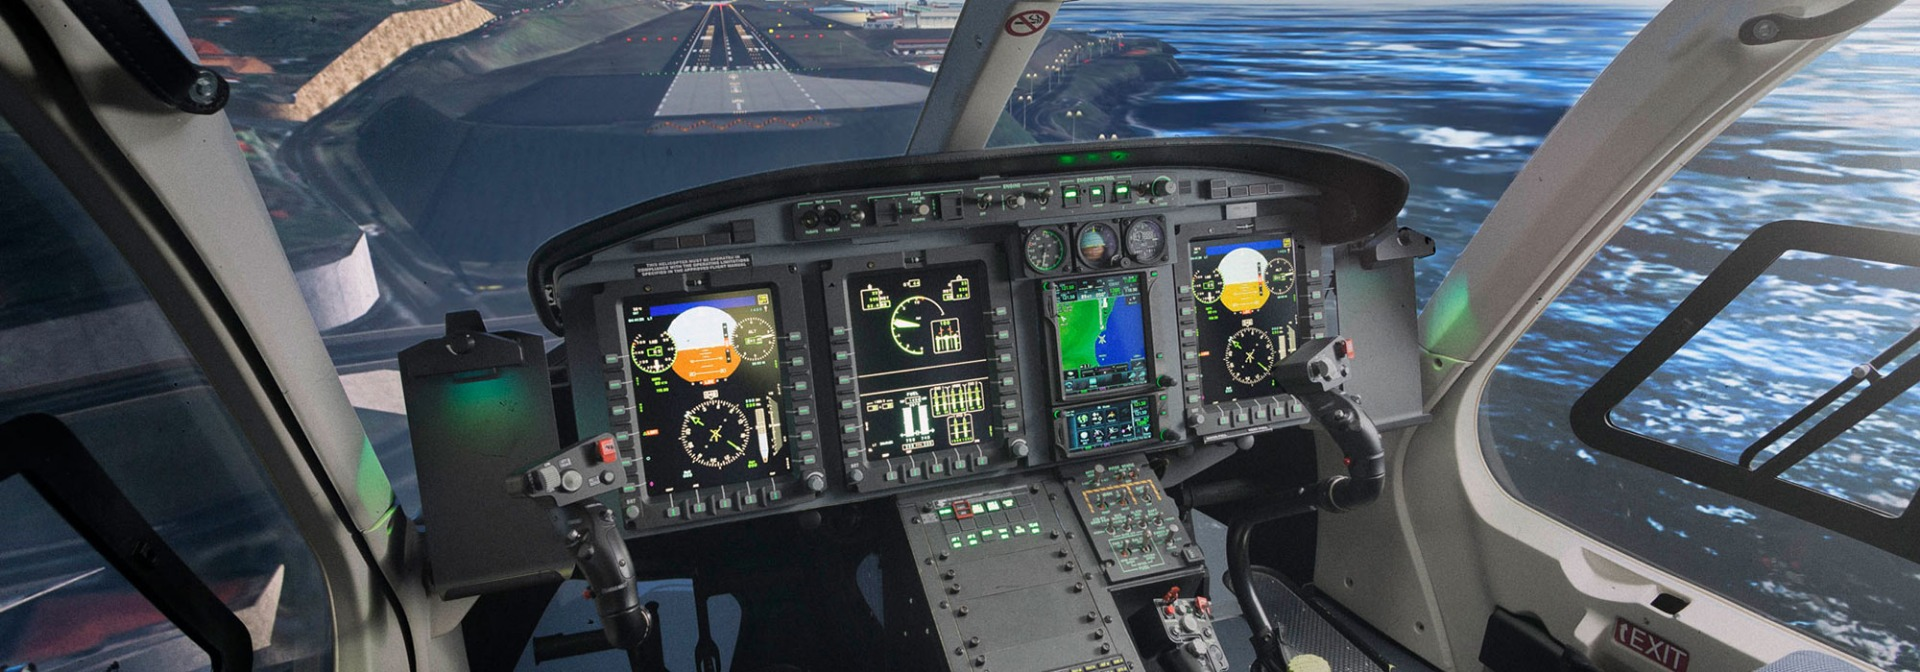 Pilot controls in avionics helicopter with rugged LCD control panel and night vision compliant design